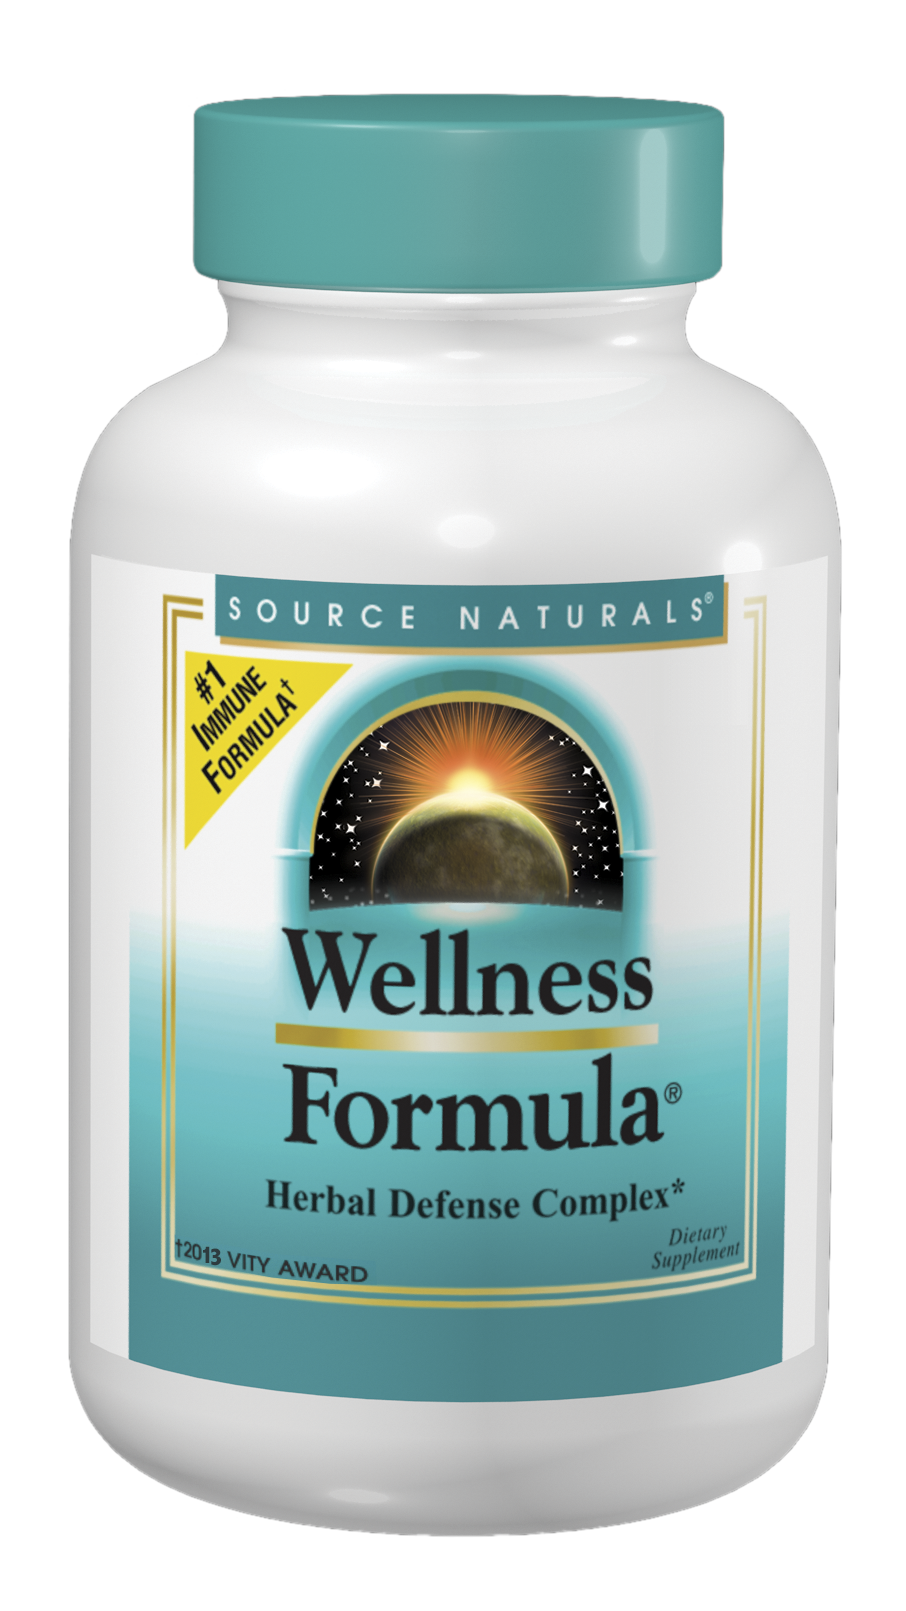 Wellness Formula by Source Naturals